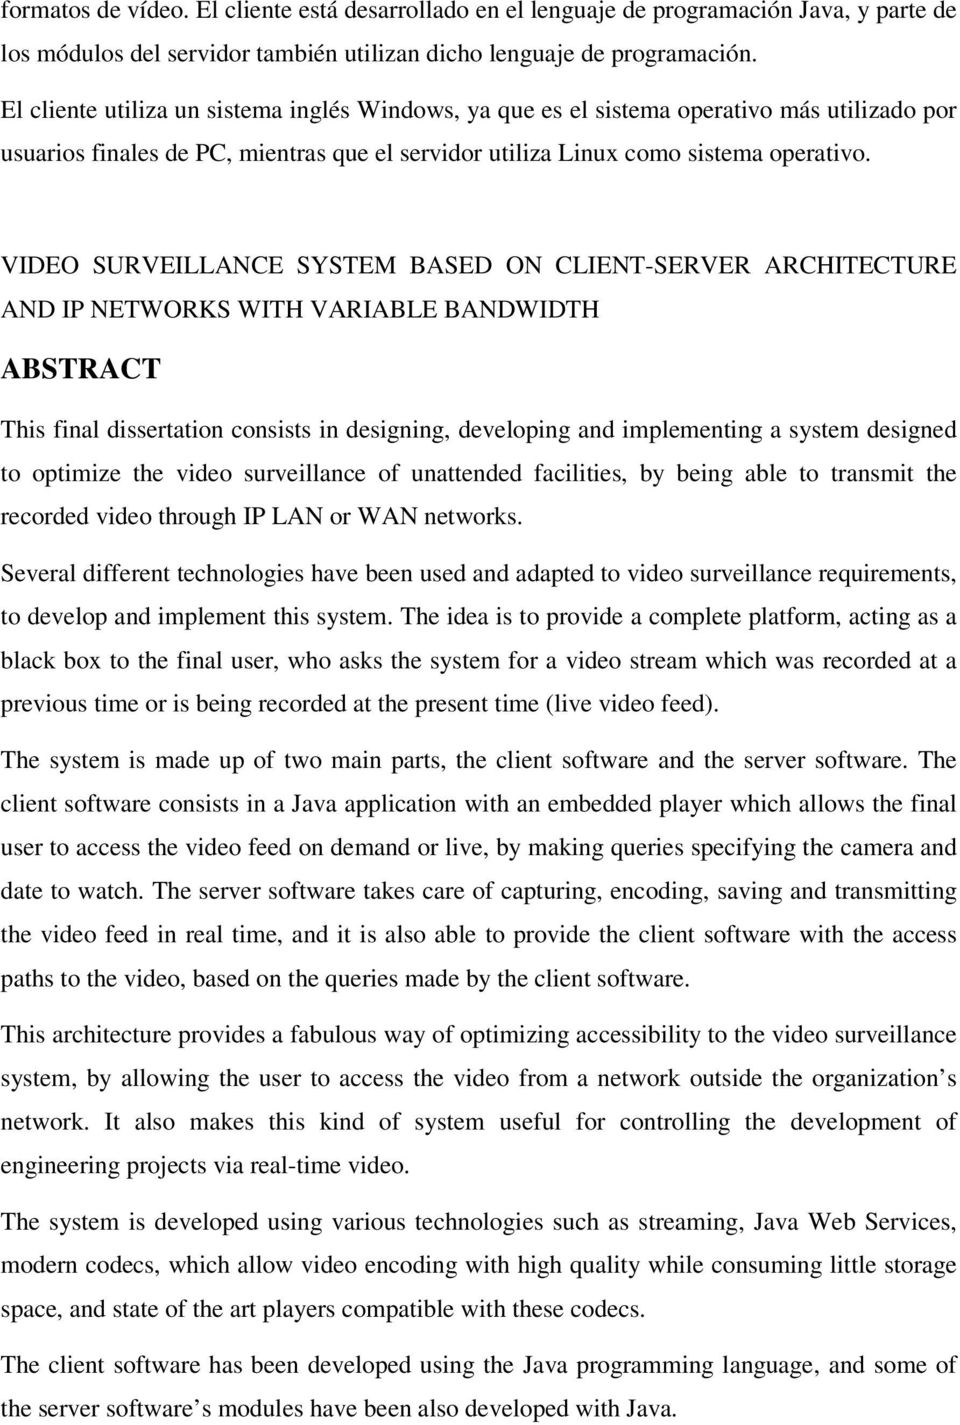 VIDEO SURVEILLANCE SYSTEM BASED ON CLIENT-SERVER ARCHITECTURE AND IP NETWORKS WITH VARIABLE BANDWIDTH ABSTRACT This final dissertation consists in designing, developing and implementing a system